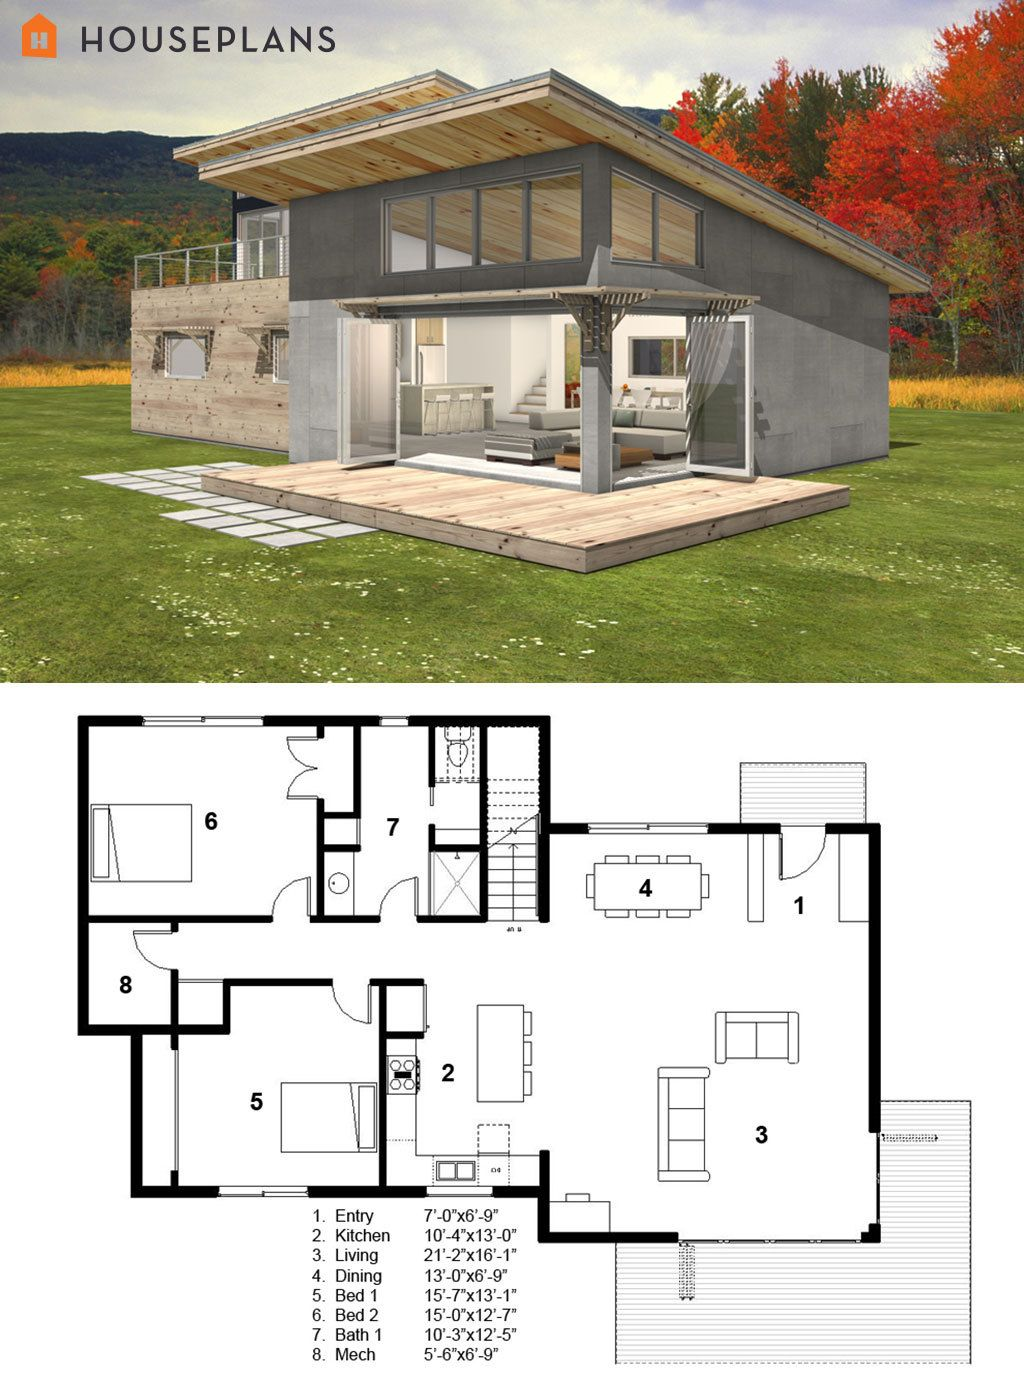 Small modern cabin house plan by freegreen energy for Cabin home floor plans